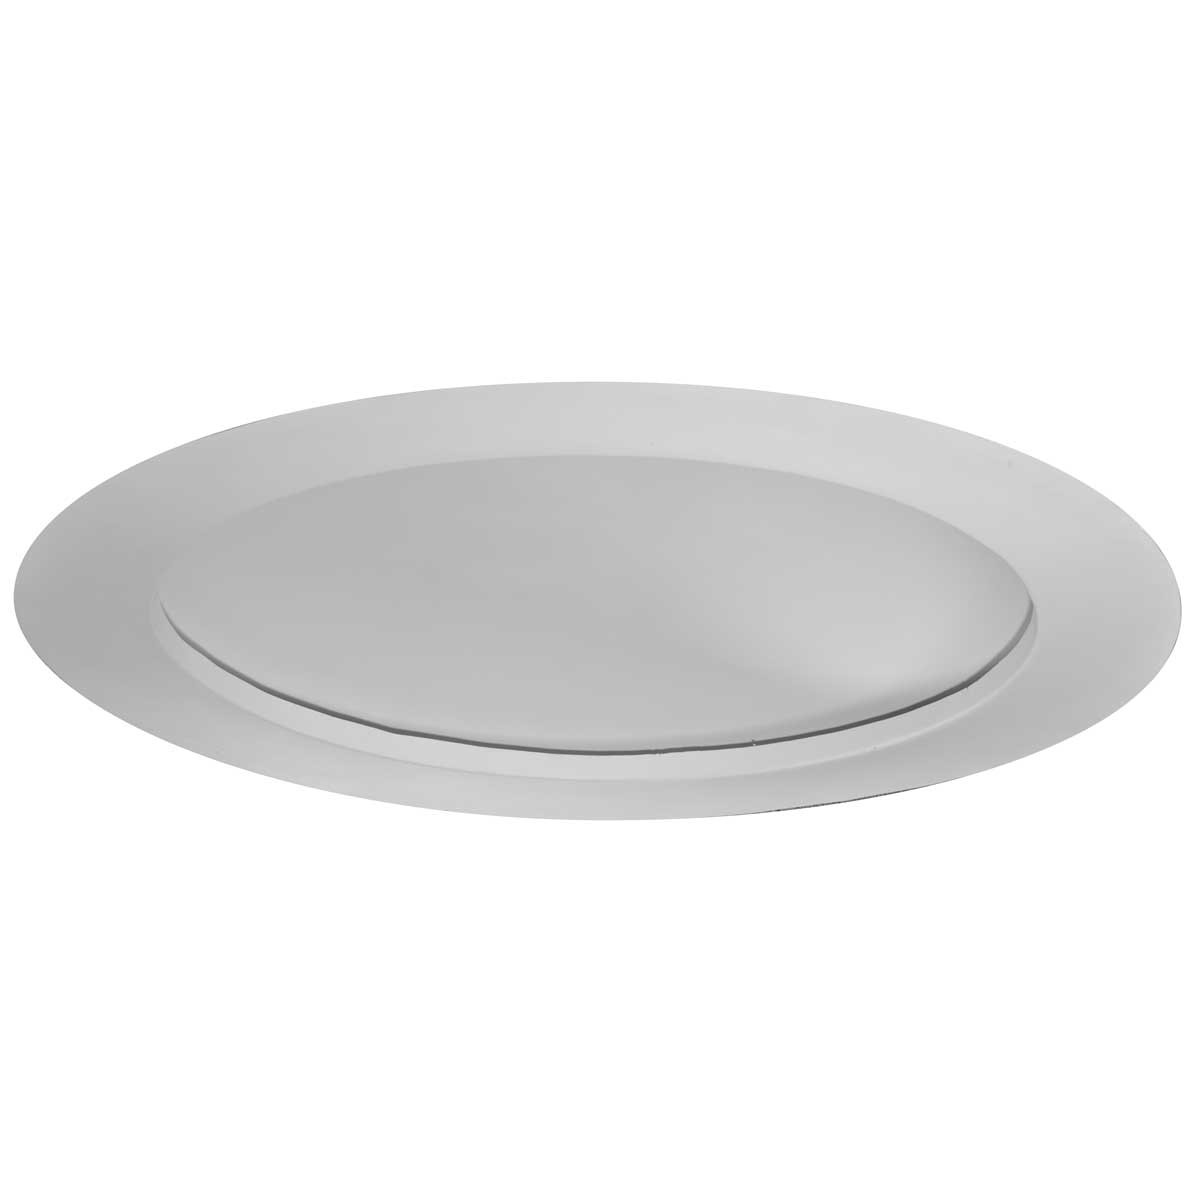 "EM-DOME74AR - 74""OD x 71 5/8""ID x 19 1/4""D Artisan Ceiling Dome with Light Ring (73 1/2""Diameter x 19 1/2""D Rough Opening)"